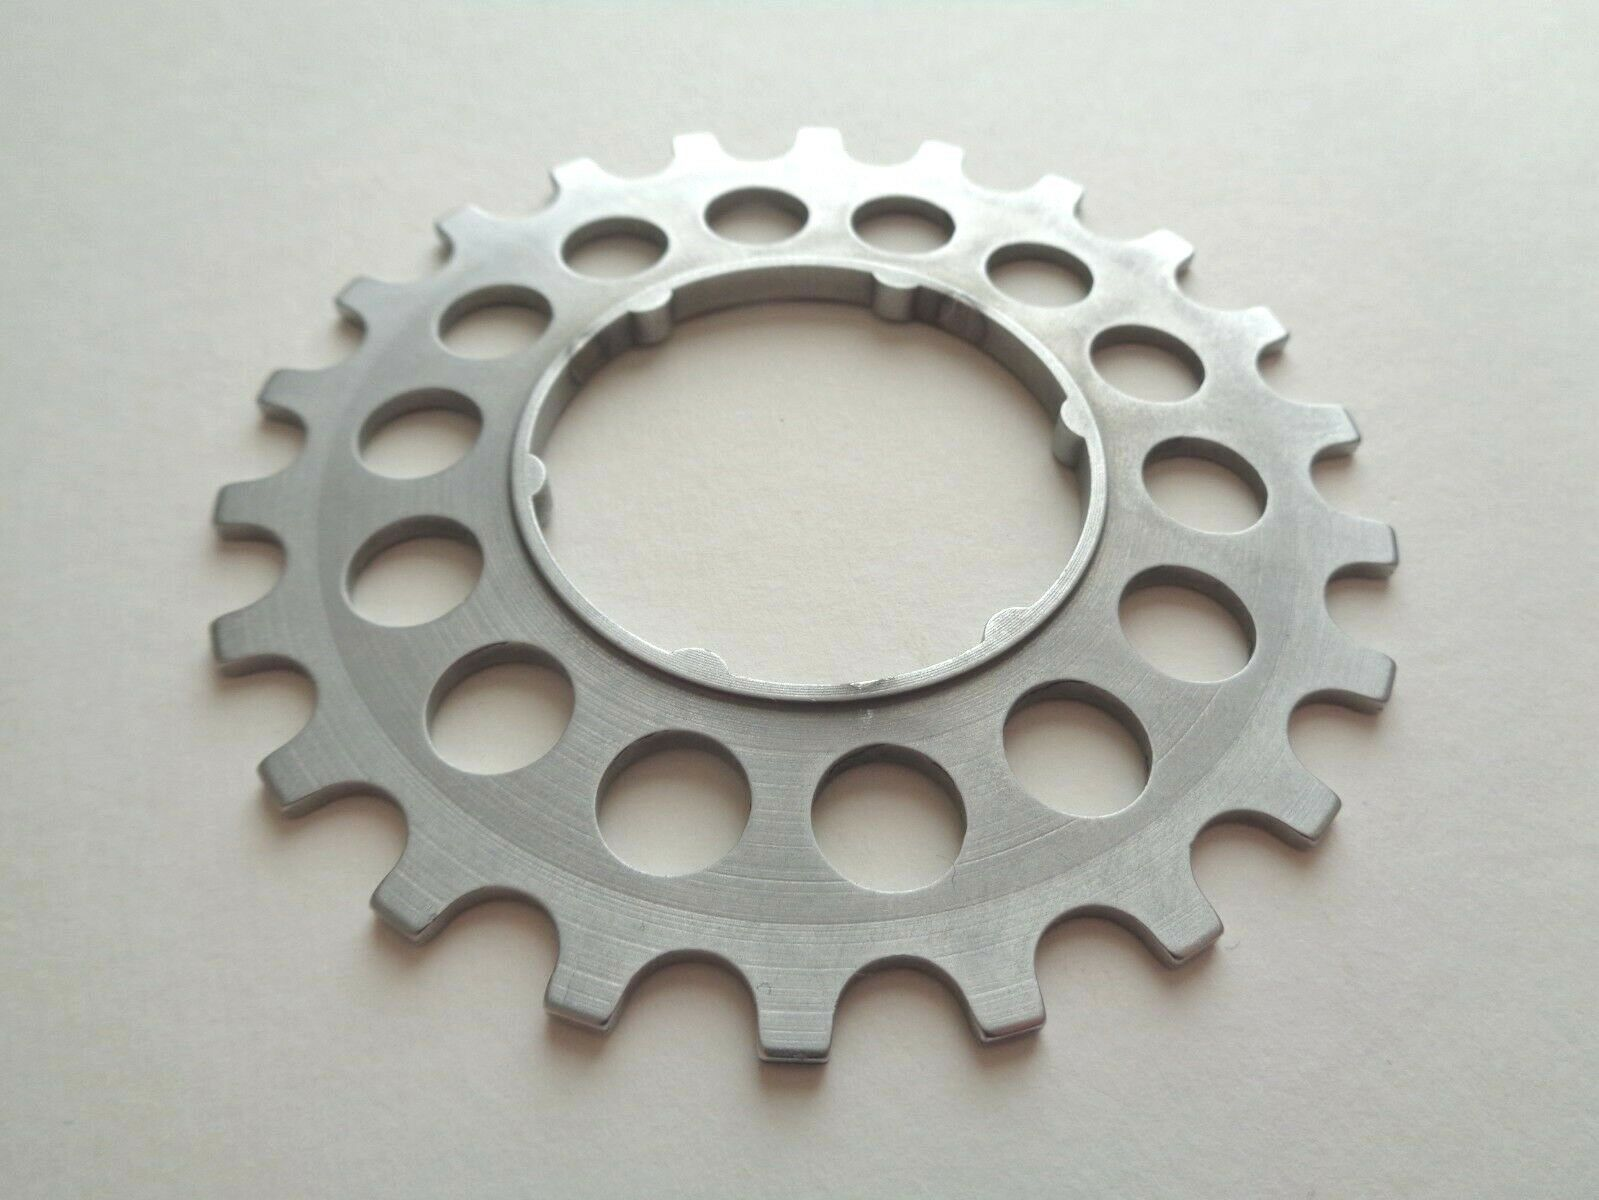 NOS  Vintage 1980s Campagnolo DE22 Aluminium 22t Italian freewheel cassette Cog  to provide you with a pleasant online shopping